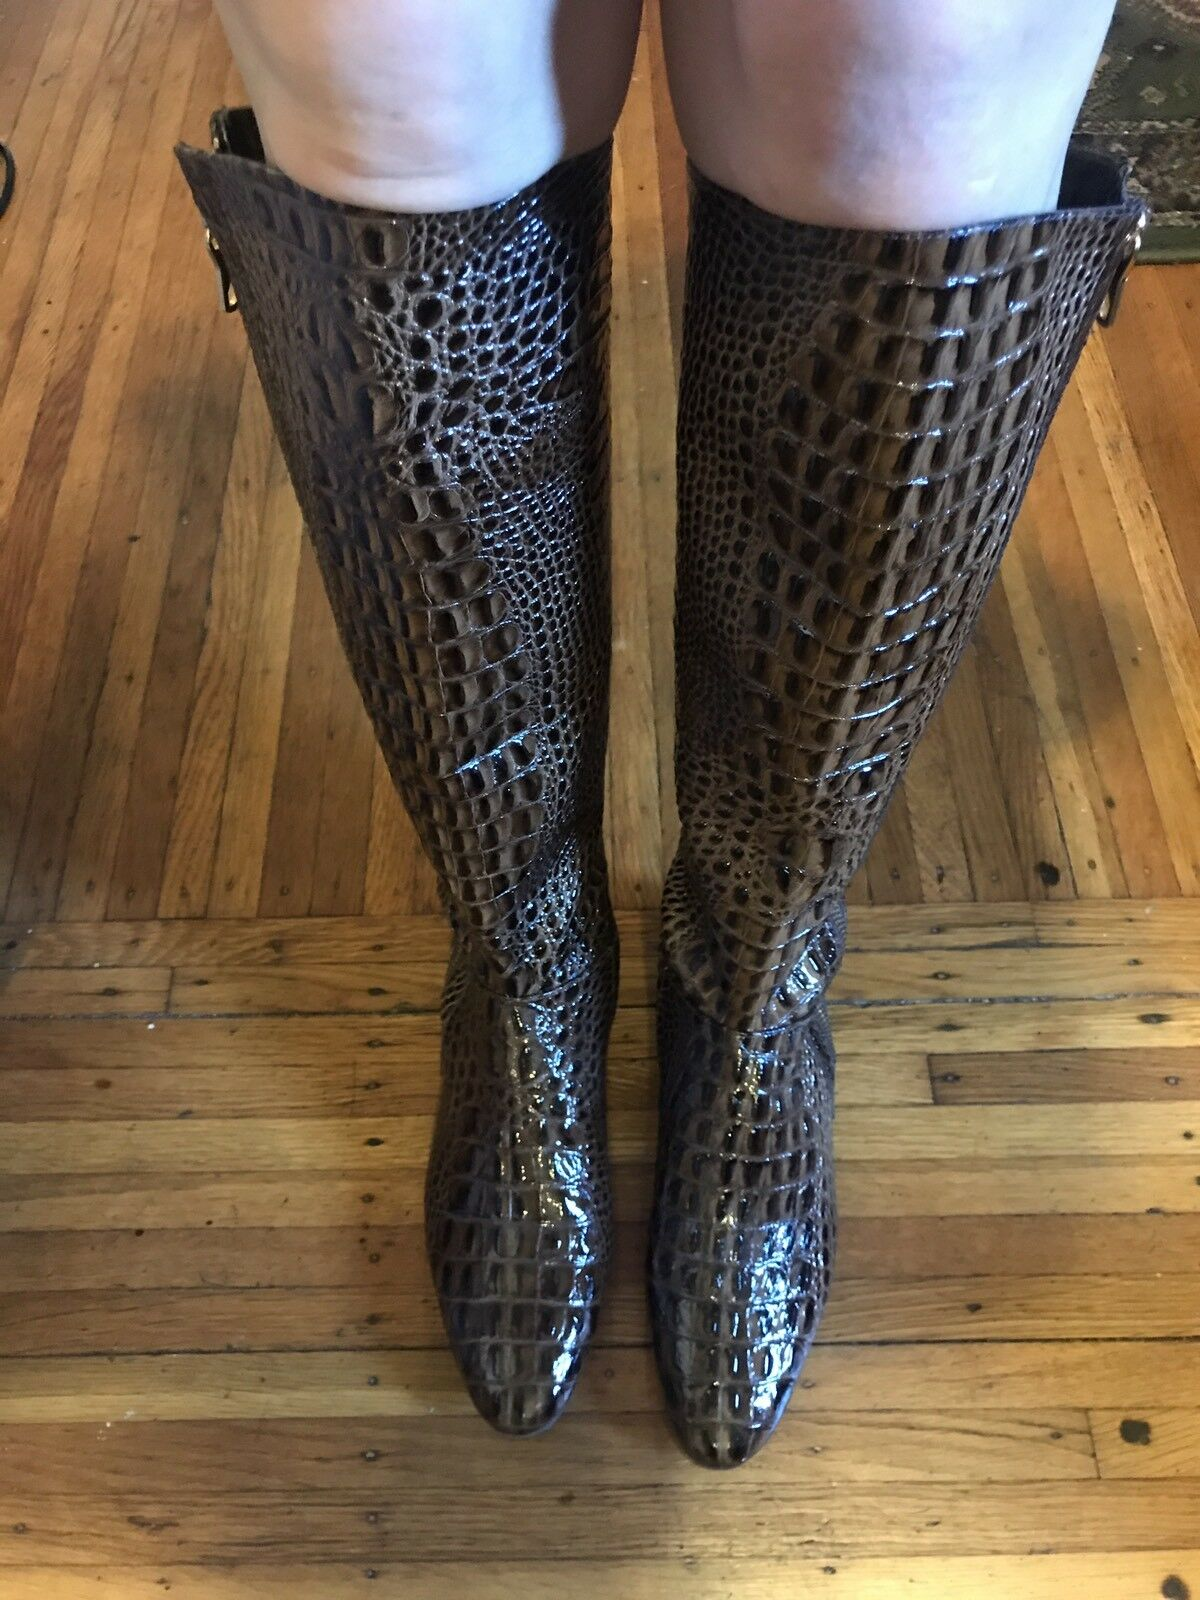 BCBG MAXAZRIA CROC EMBOSSED PATENT LEATHER FLAT KNEE HIGH BOOTS SIZE 6 1/2 $695